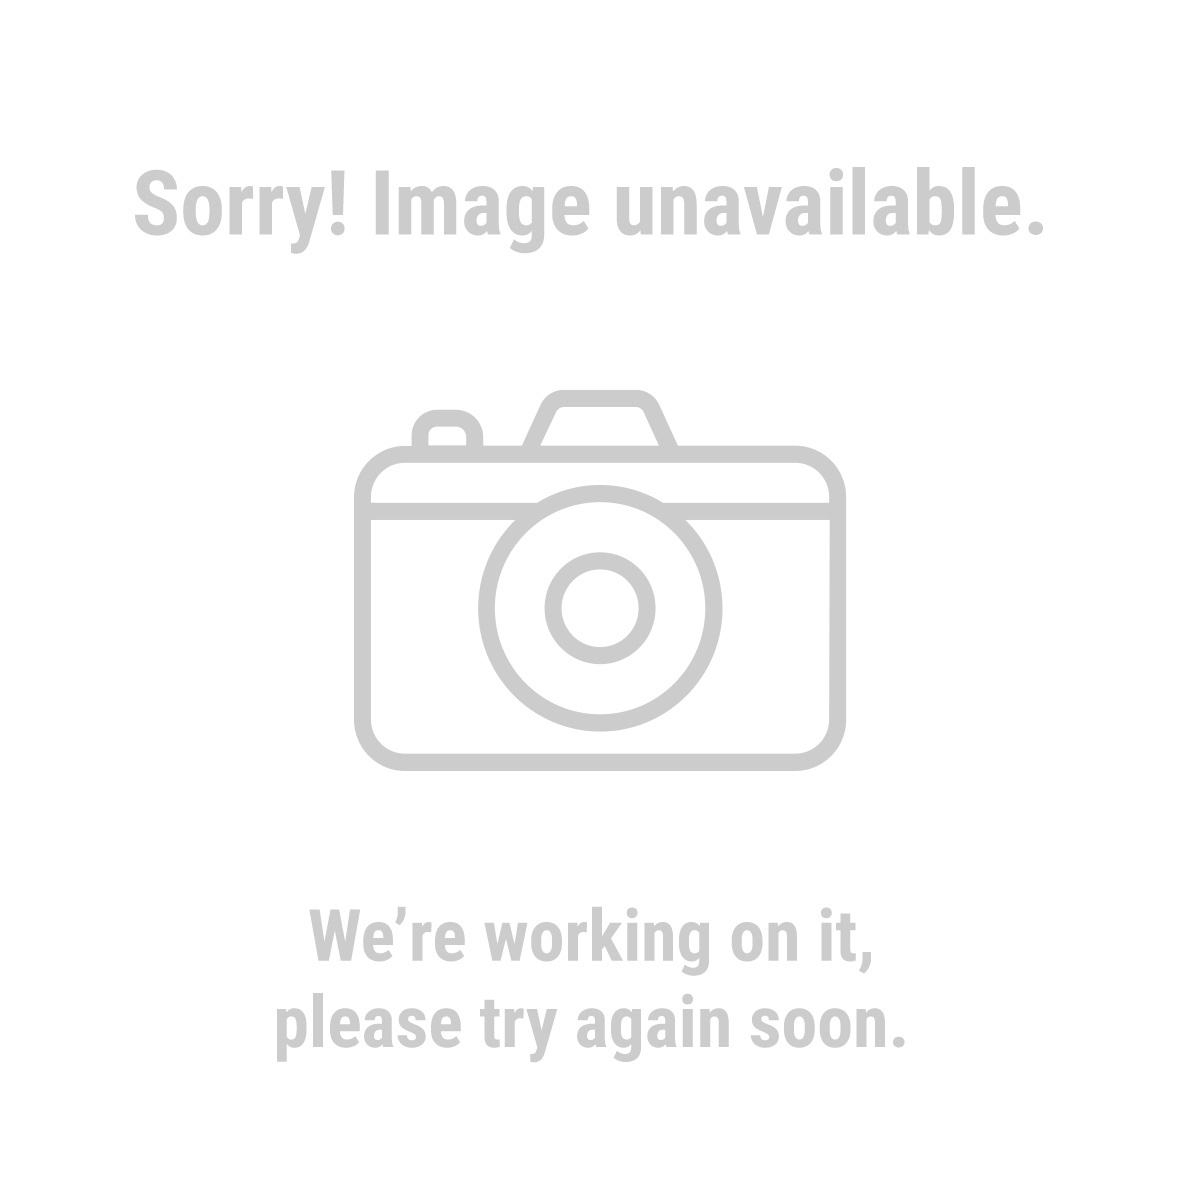 HFT® 60473 29 ft. 4 in. x 49 ft. Blue All Purpose/Weather Resistant Tarp